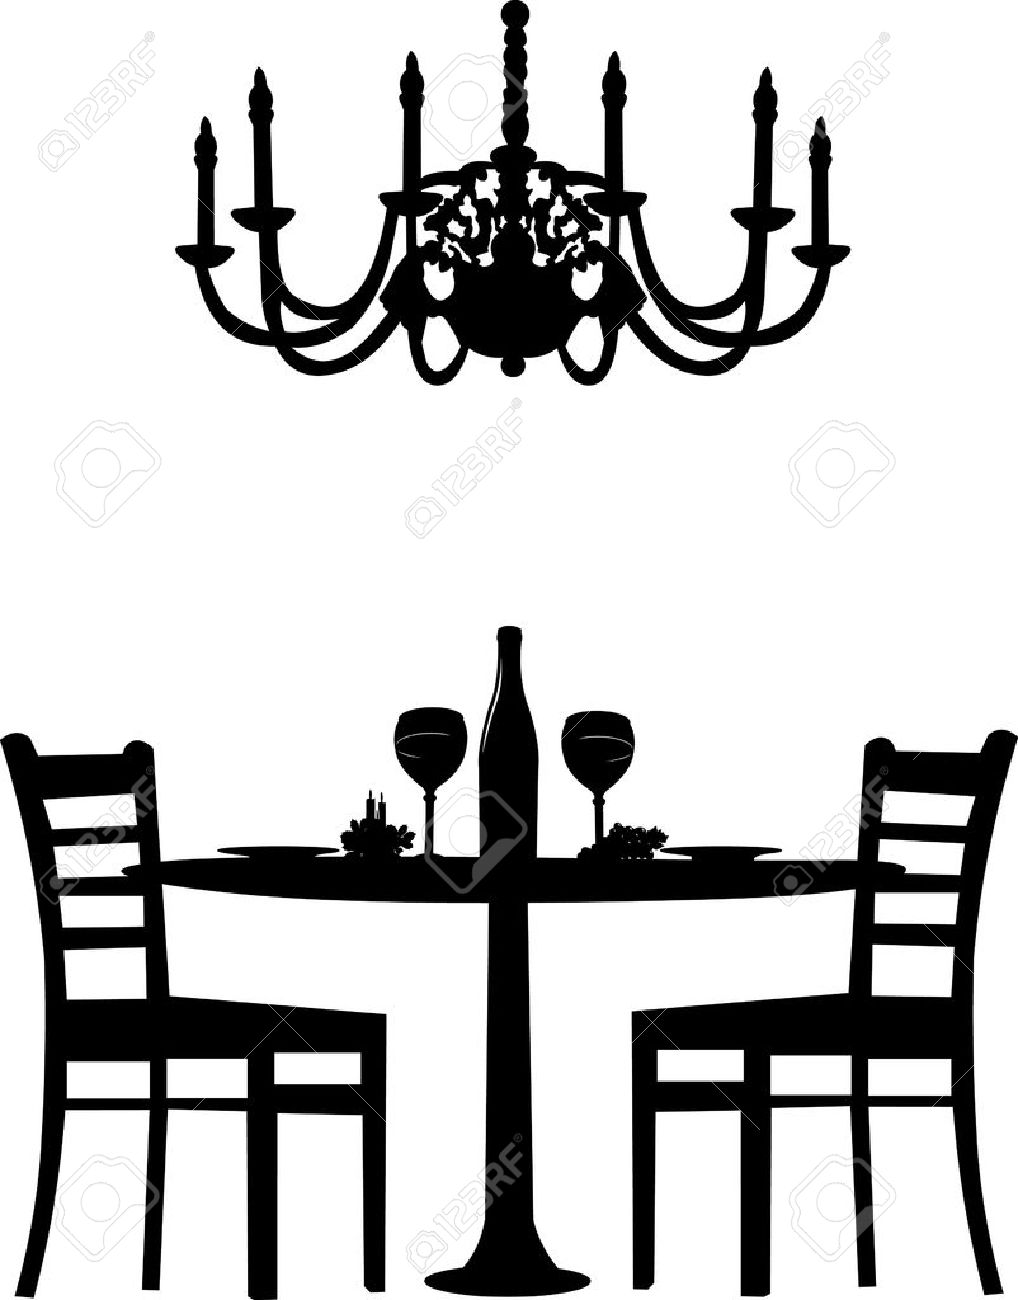 Antique chair silhouette - Dining Chair Romantic Dinner For Two With Table And Two Chairs Candle Decoration And